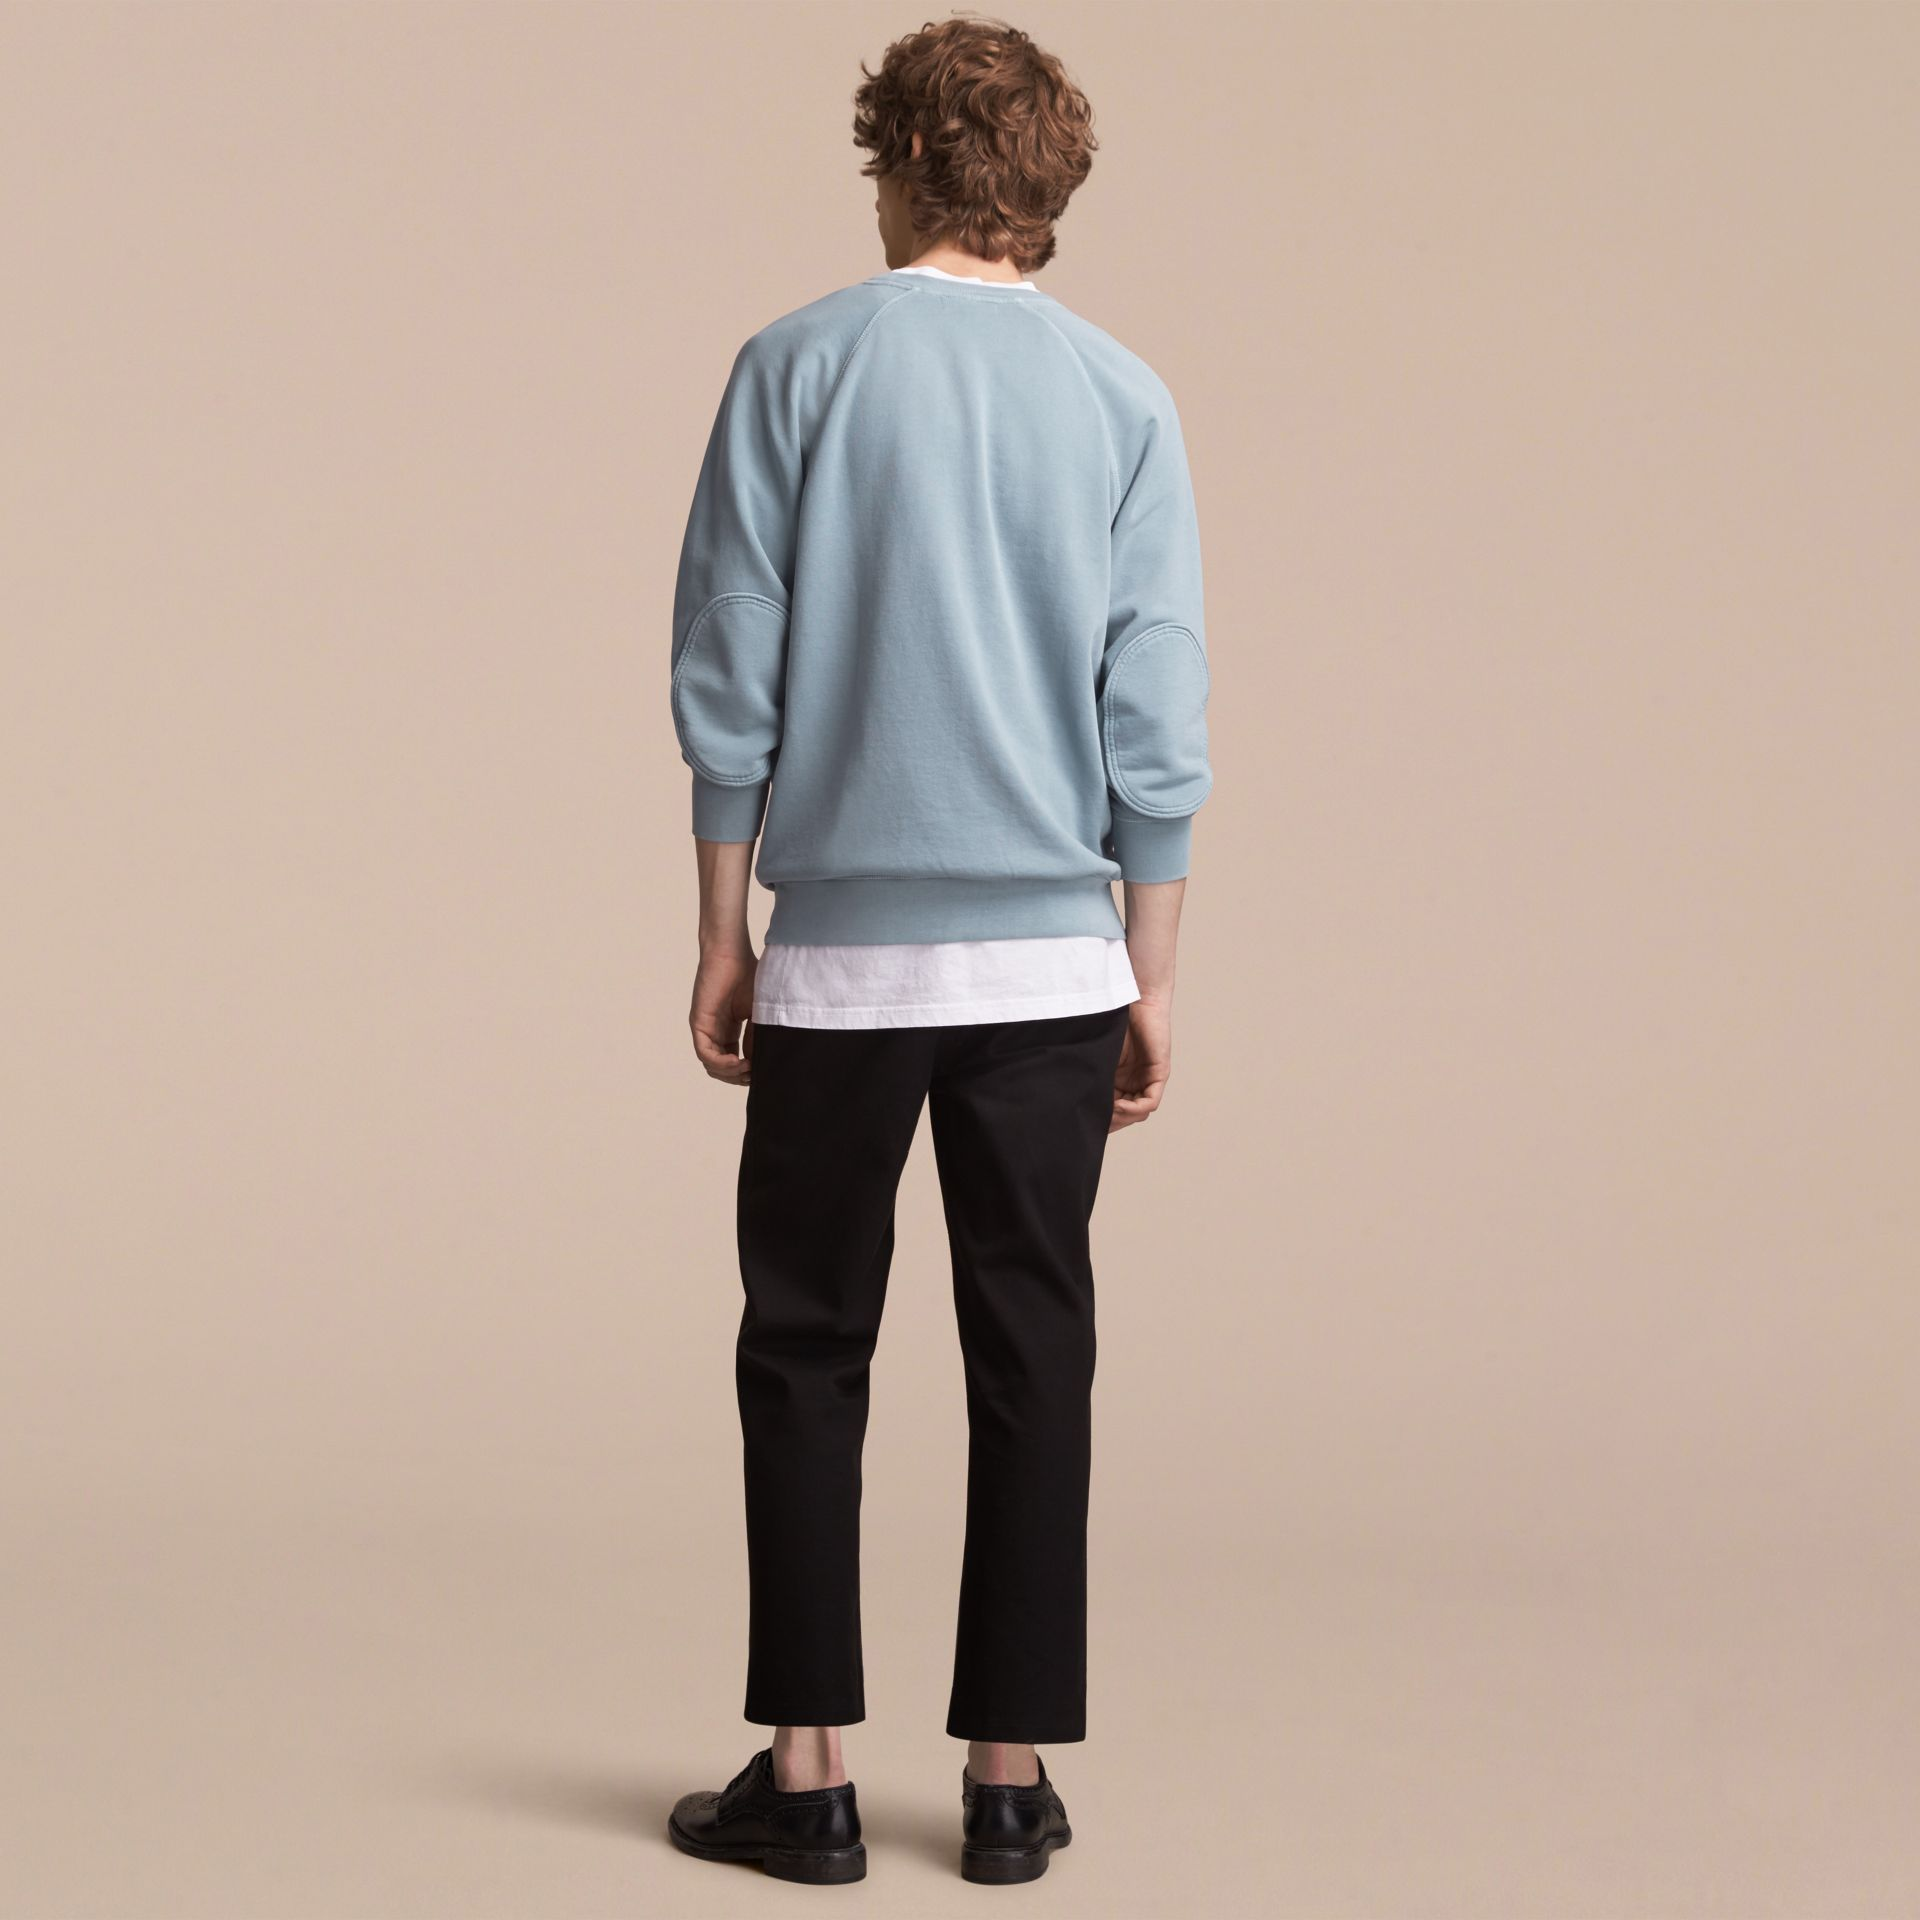 Unisex Pigment-dyed Cotton Oversize Sweatshirt in Dusty Blue - gallery image 3